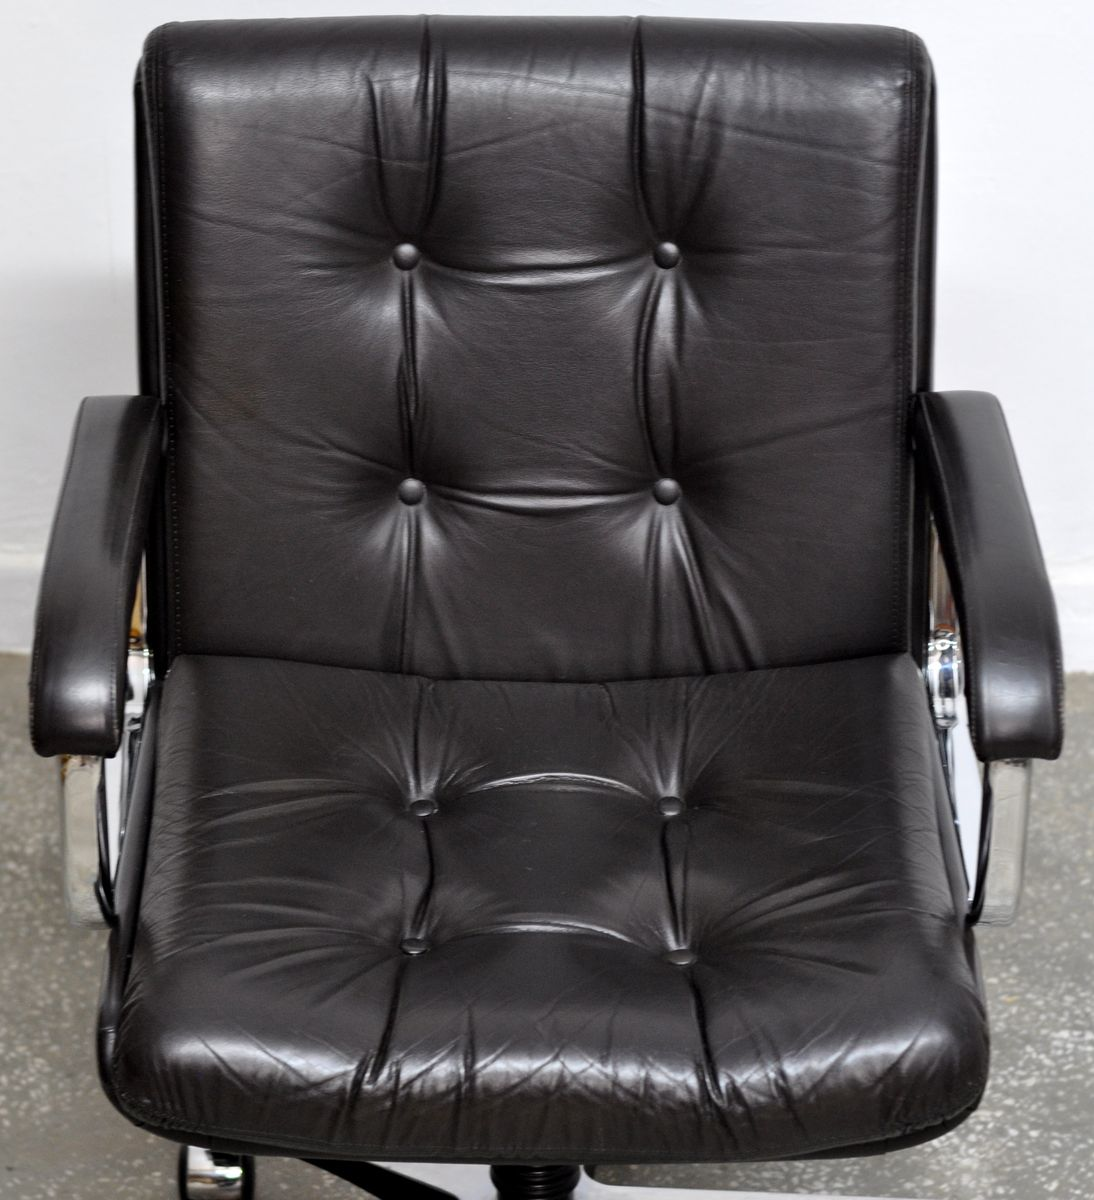 norwegian vintage office chair. Vintage Norwegian Office Chair From Ring Mekanikk 9. Price: $2,351.00 Regular $2,609.00 I